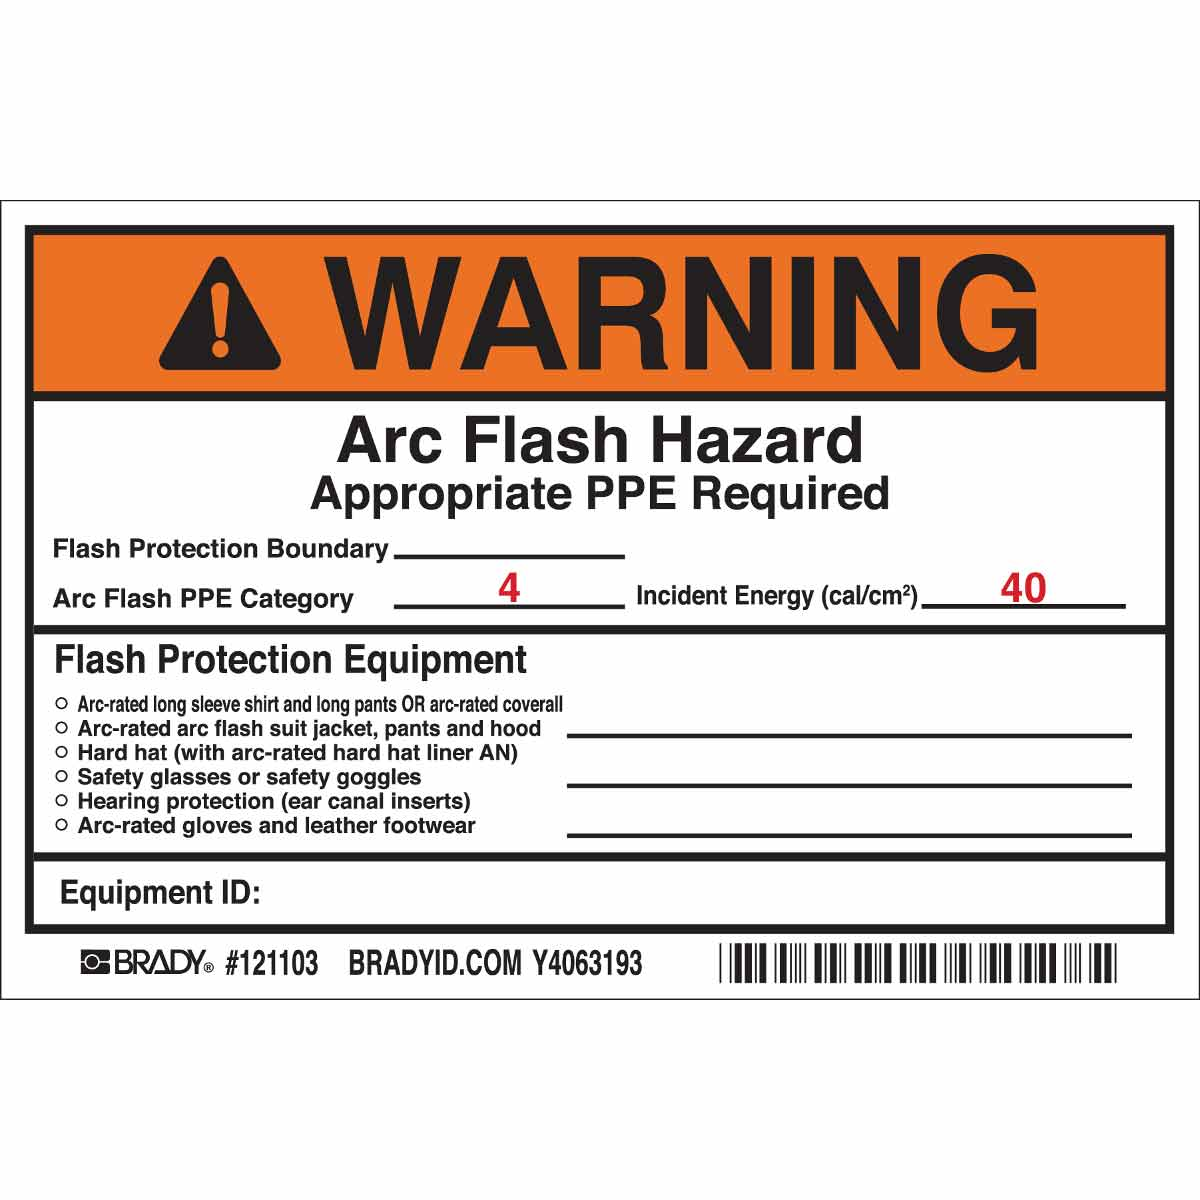 Arc Flash Hazard Label Template